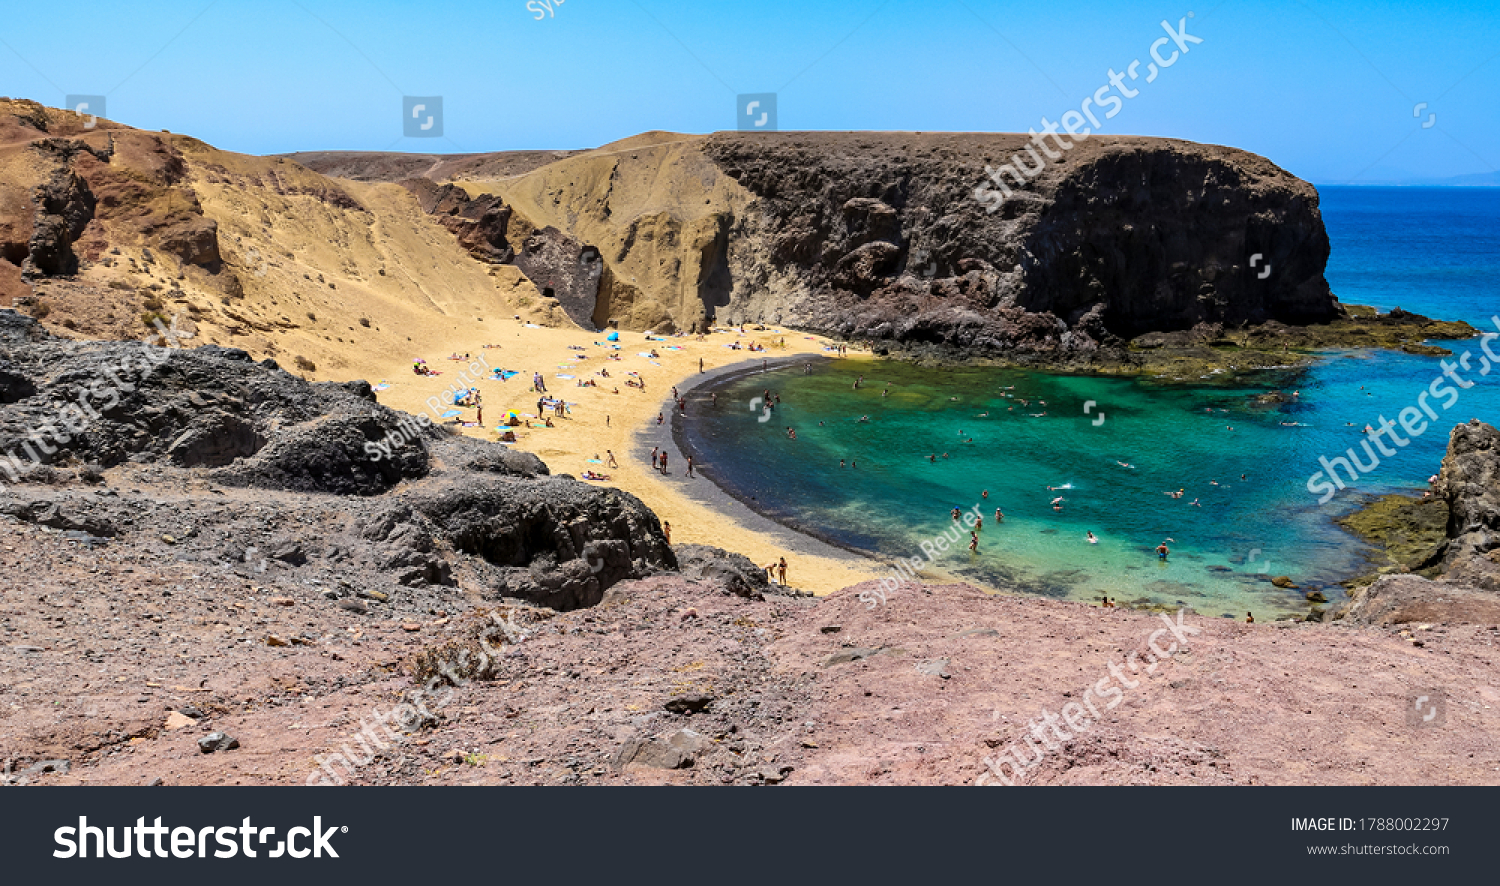 Scenic view of Papagayo Beach and the Atlantic ocean in Costa Blanca, Yaiza, Lanzarote, Canary Islands, Spain.